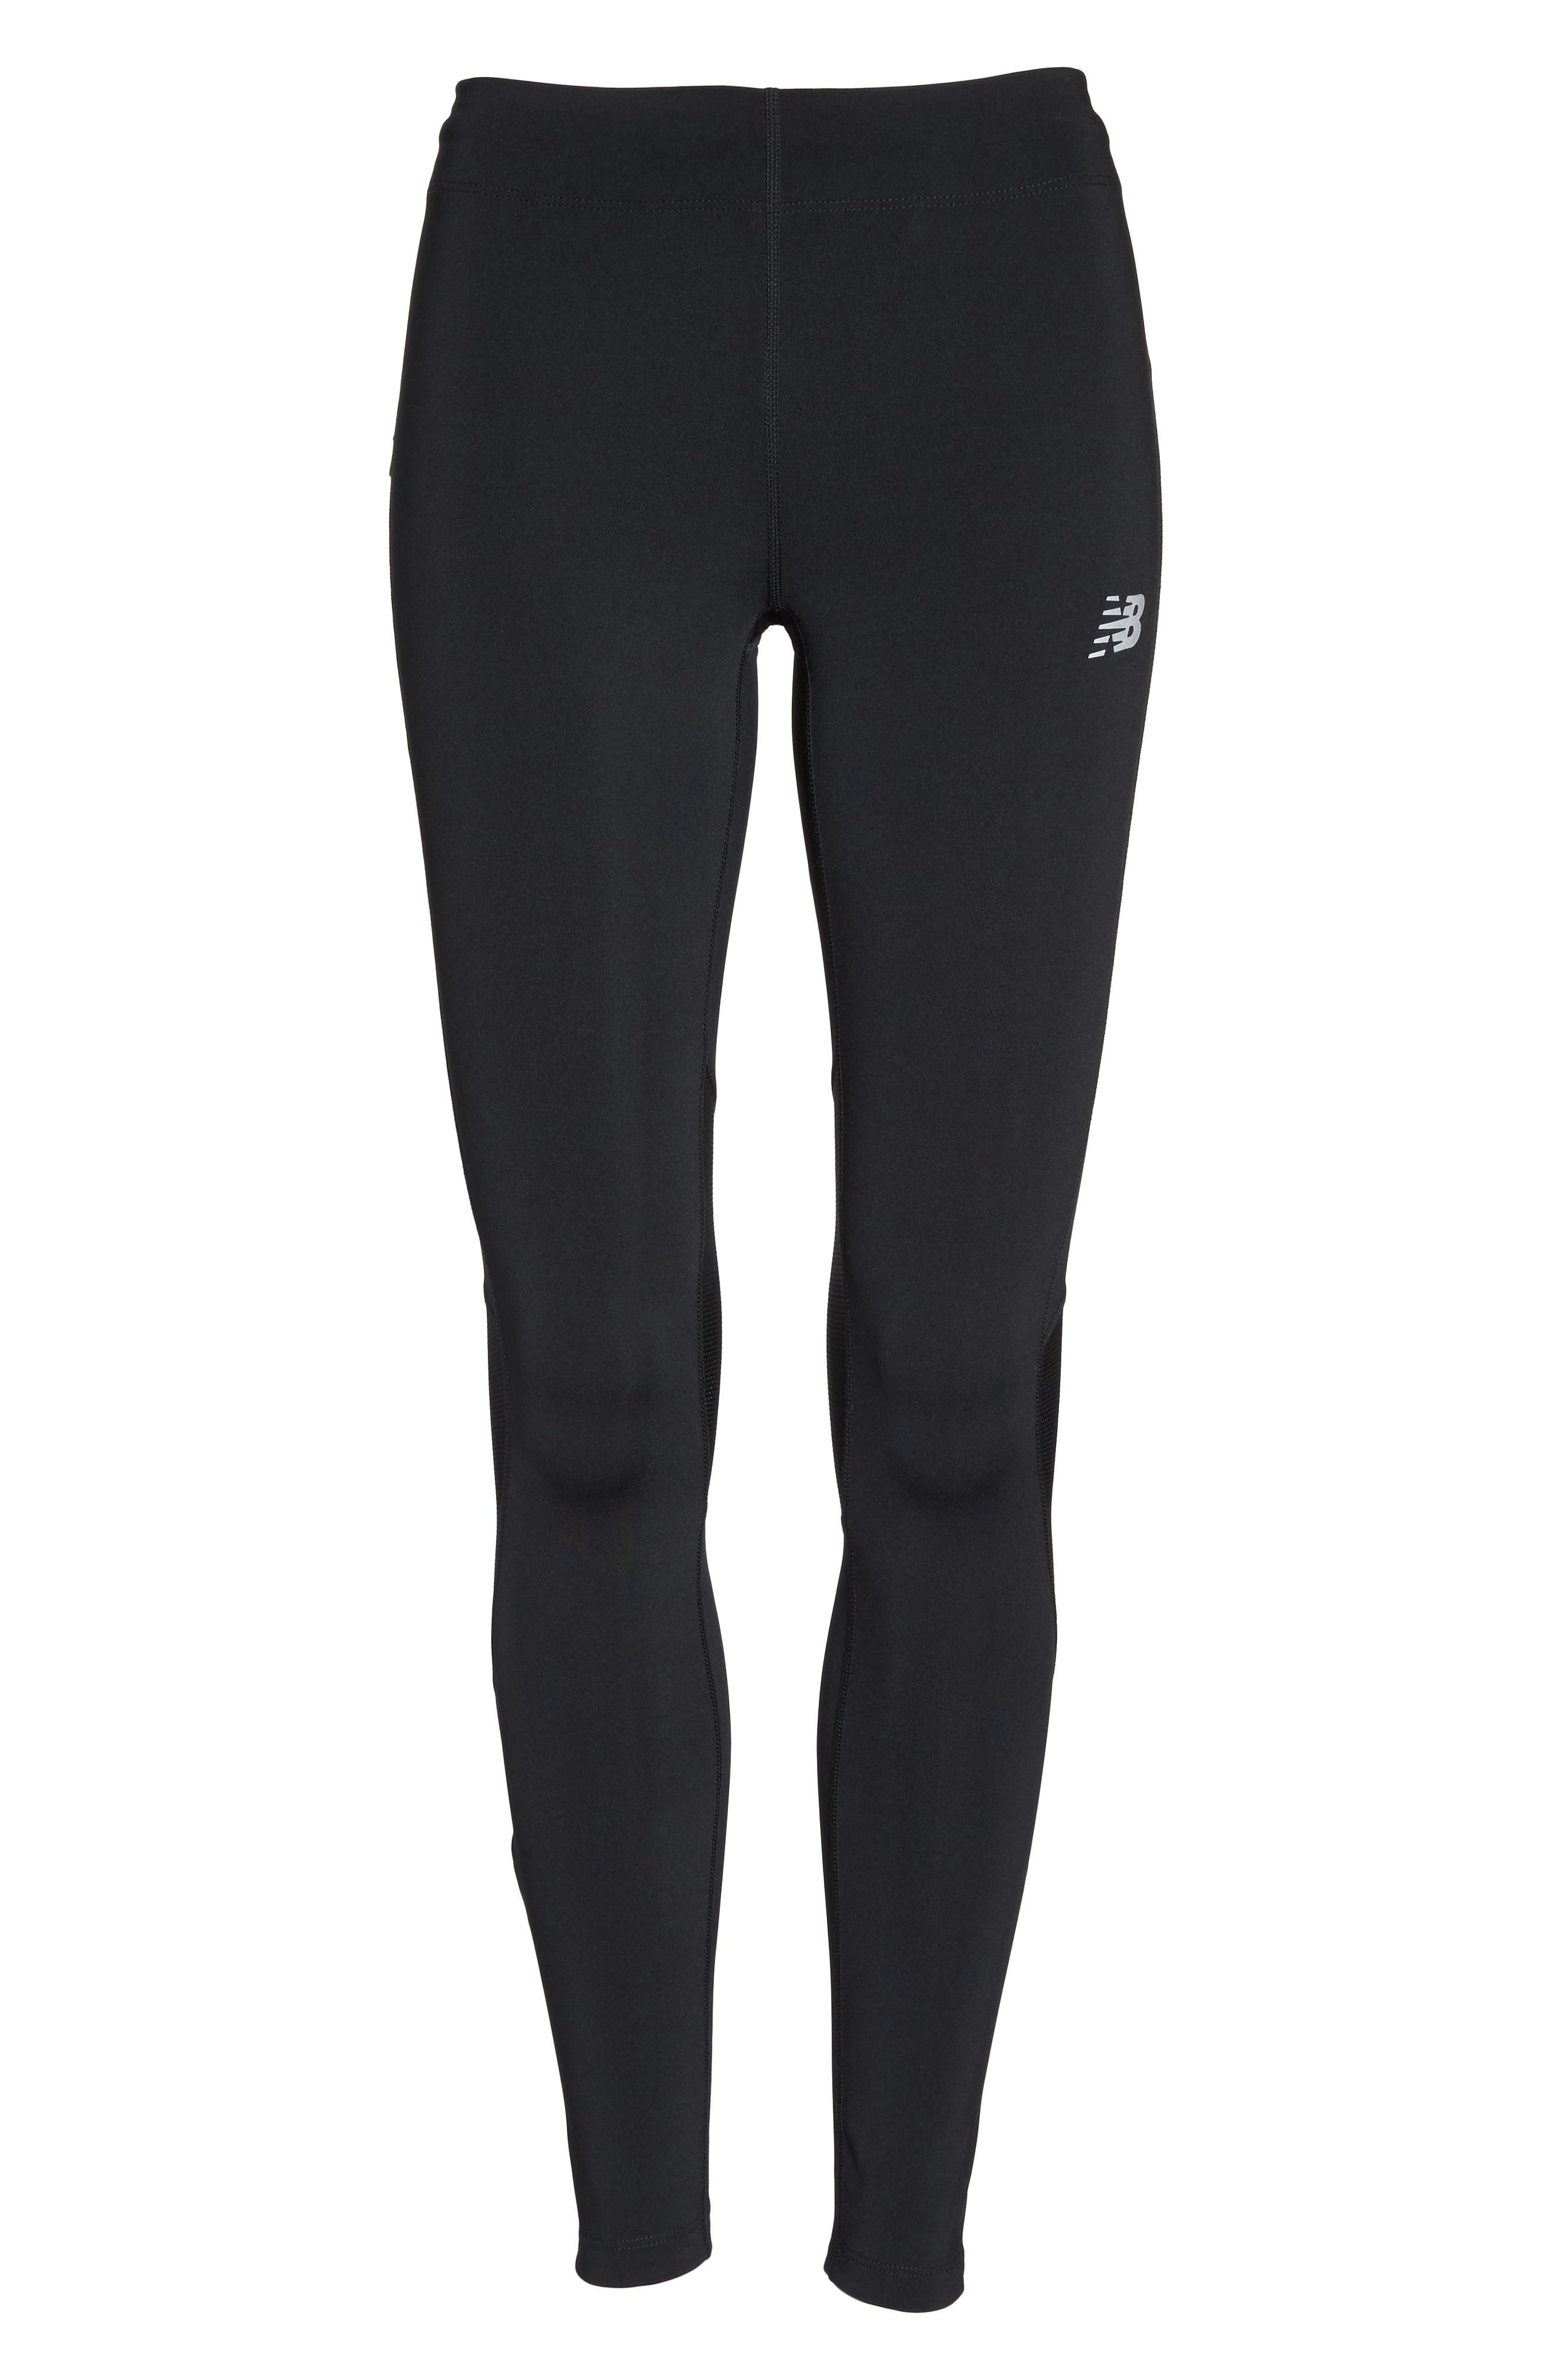 Impact Premium Running Tights,                             Alternate thumbnail 6, color,                             001